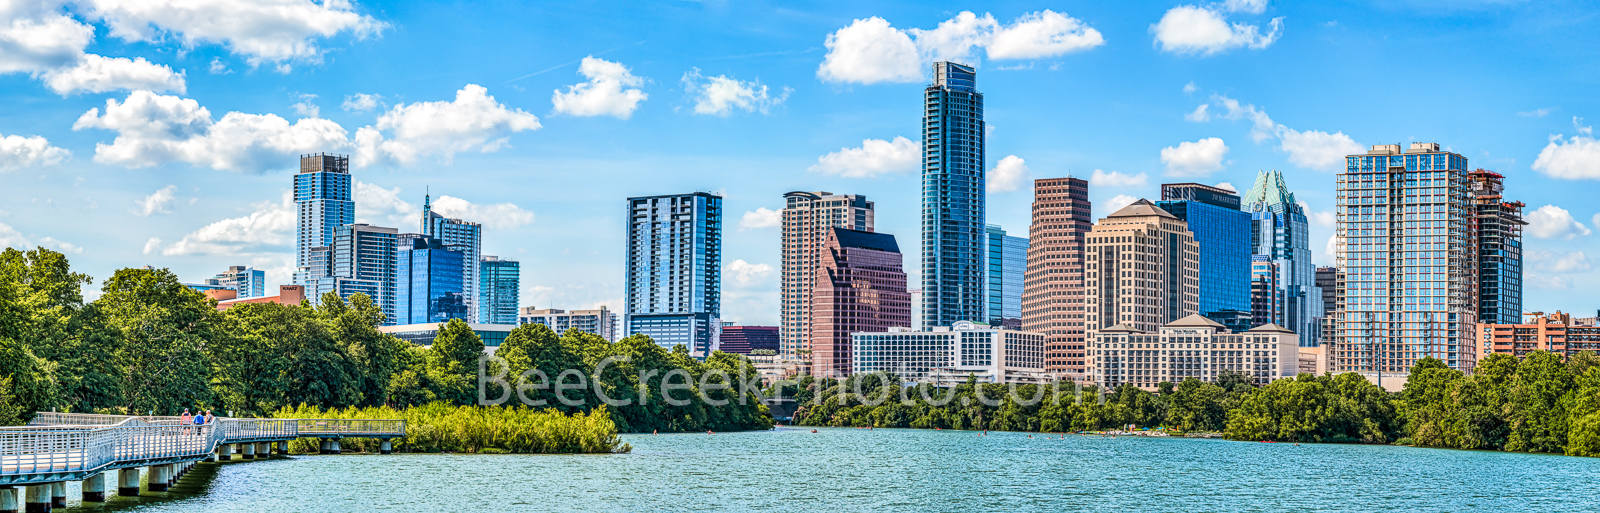 Austin Skyline, Austin, skyline, austin downtown, pics of texas, lady bird lake,  boardwalk, high rise, buildings, city of austin, austin tx,   architecture, beecreekphoto, city,